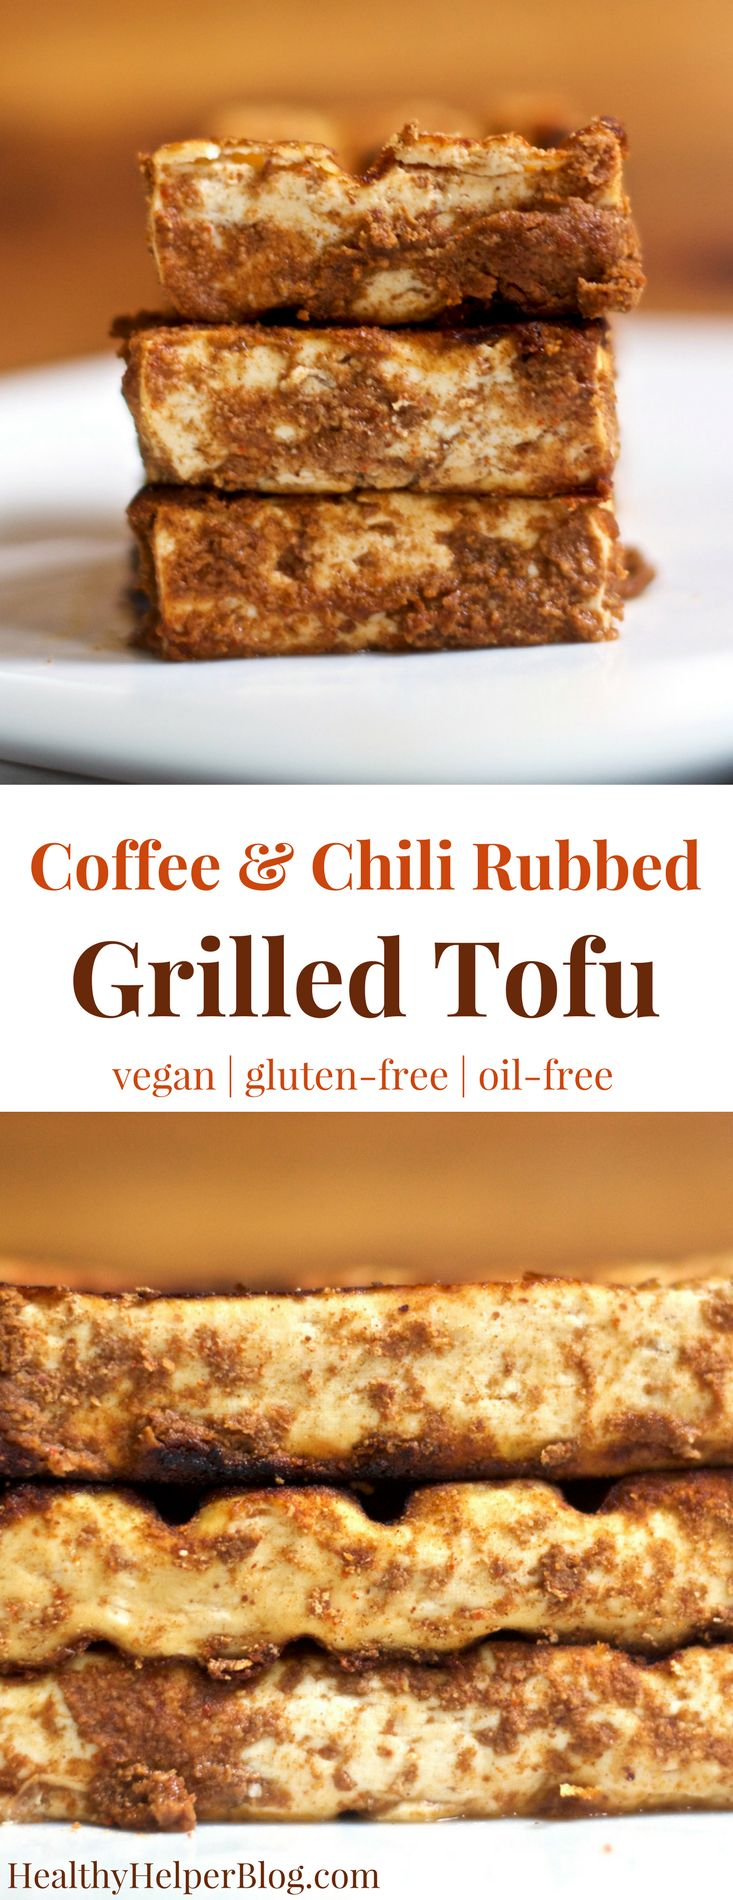 Coffee & Chili Rubbed Tofu | Healthy Helper @Healthy_Helper A plant-based grilled delight for summer BBQs and potlucks! This Coffee & Chili Rubbed Tofu is a vegan and gluten-free main dish that veggie lovers and meat eaters can agree on! Flavorful, bold in taste, and a great way to serve tofu.